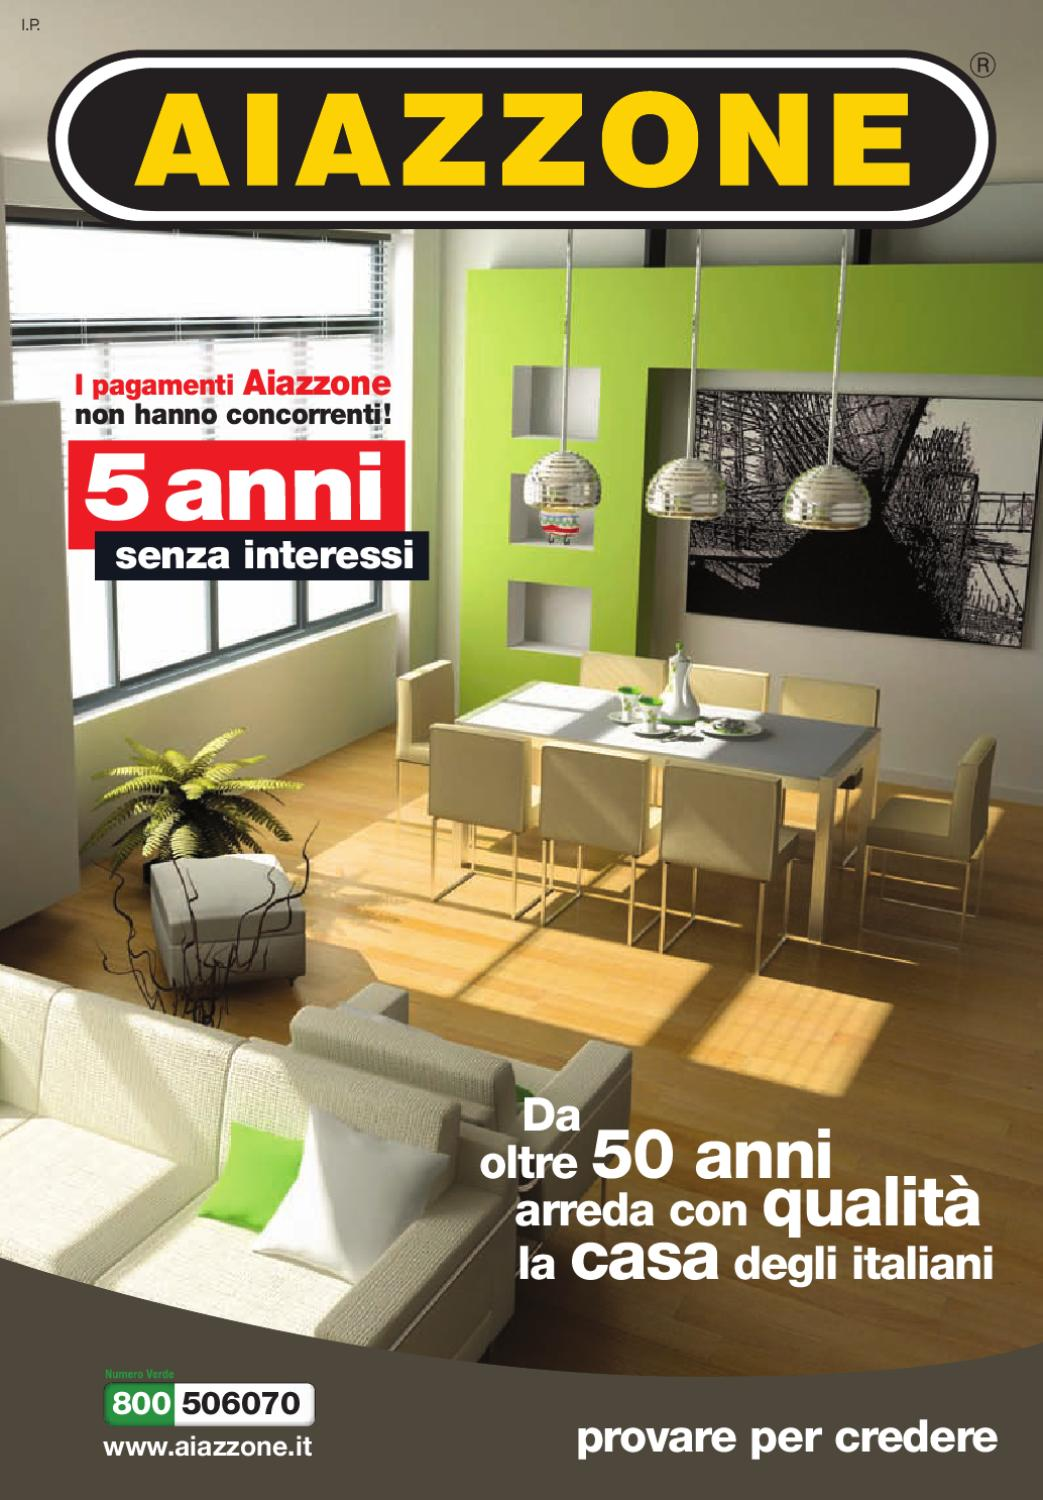 Divano Letto Aiazzone.Aiazzone By Alessandro Palmieri Issuu